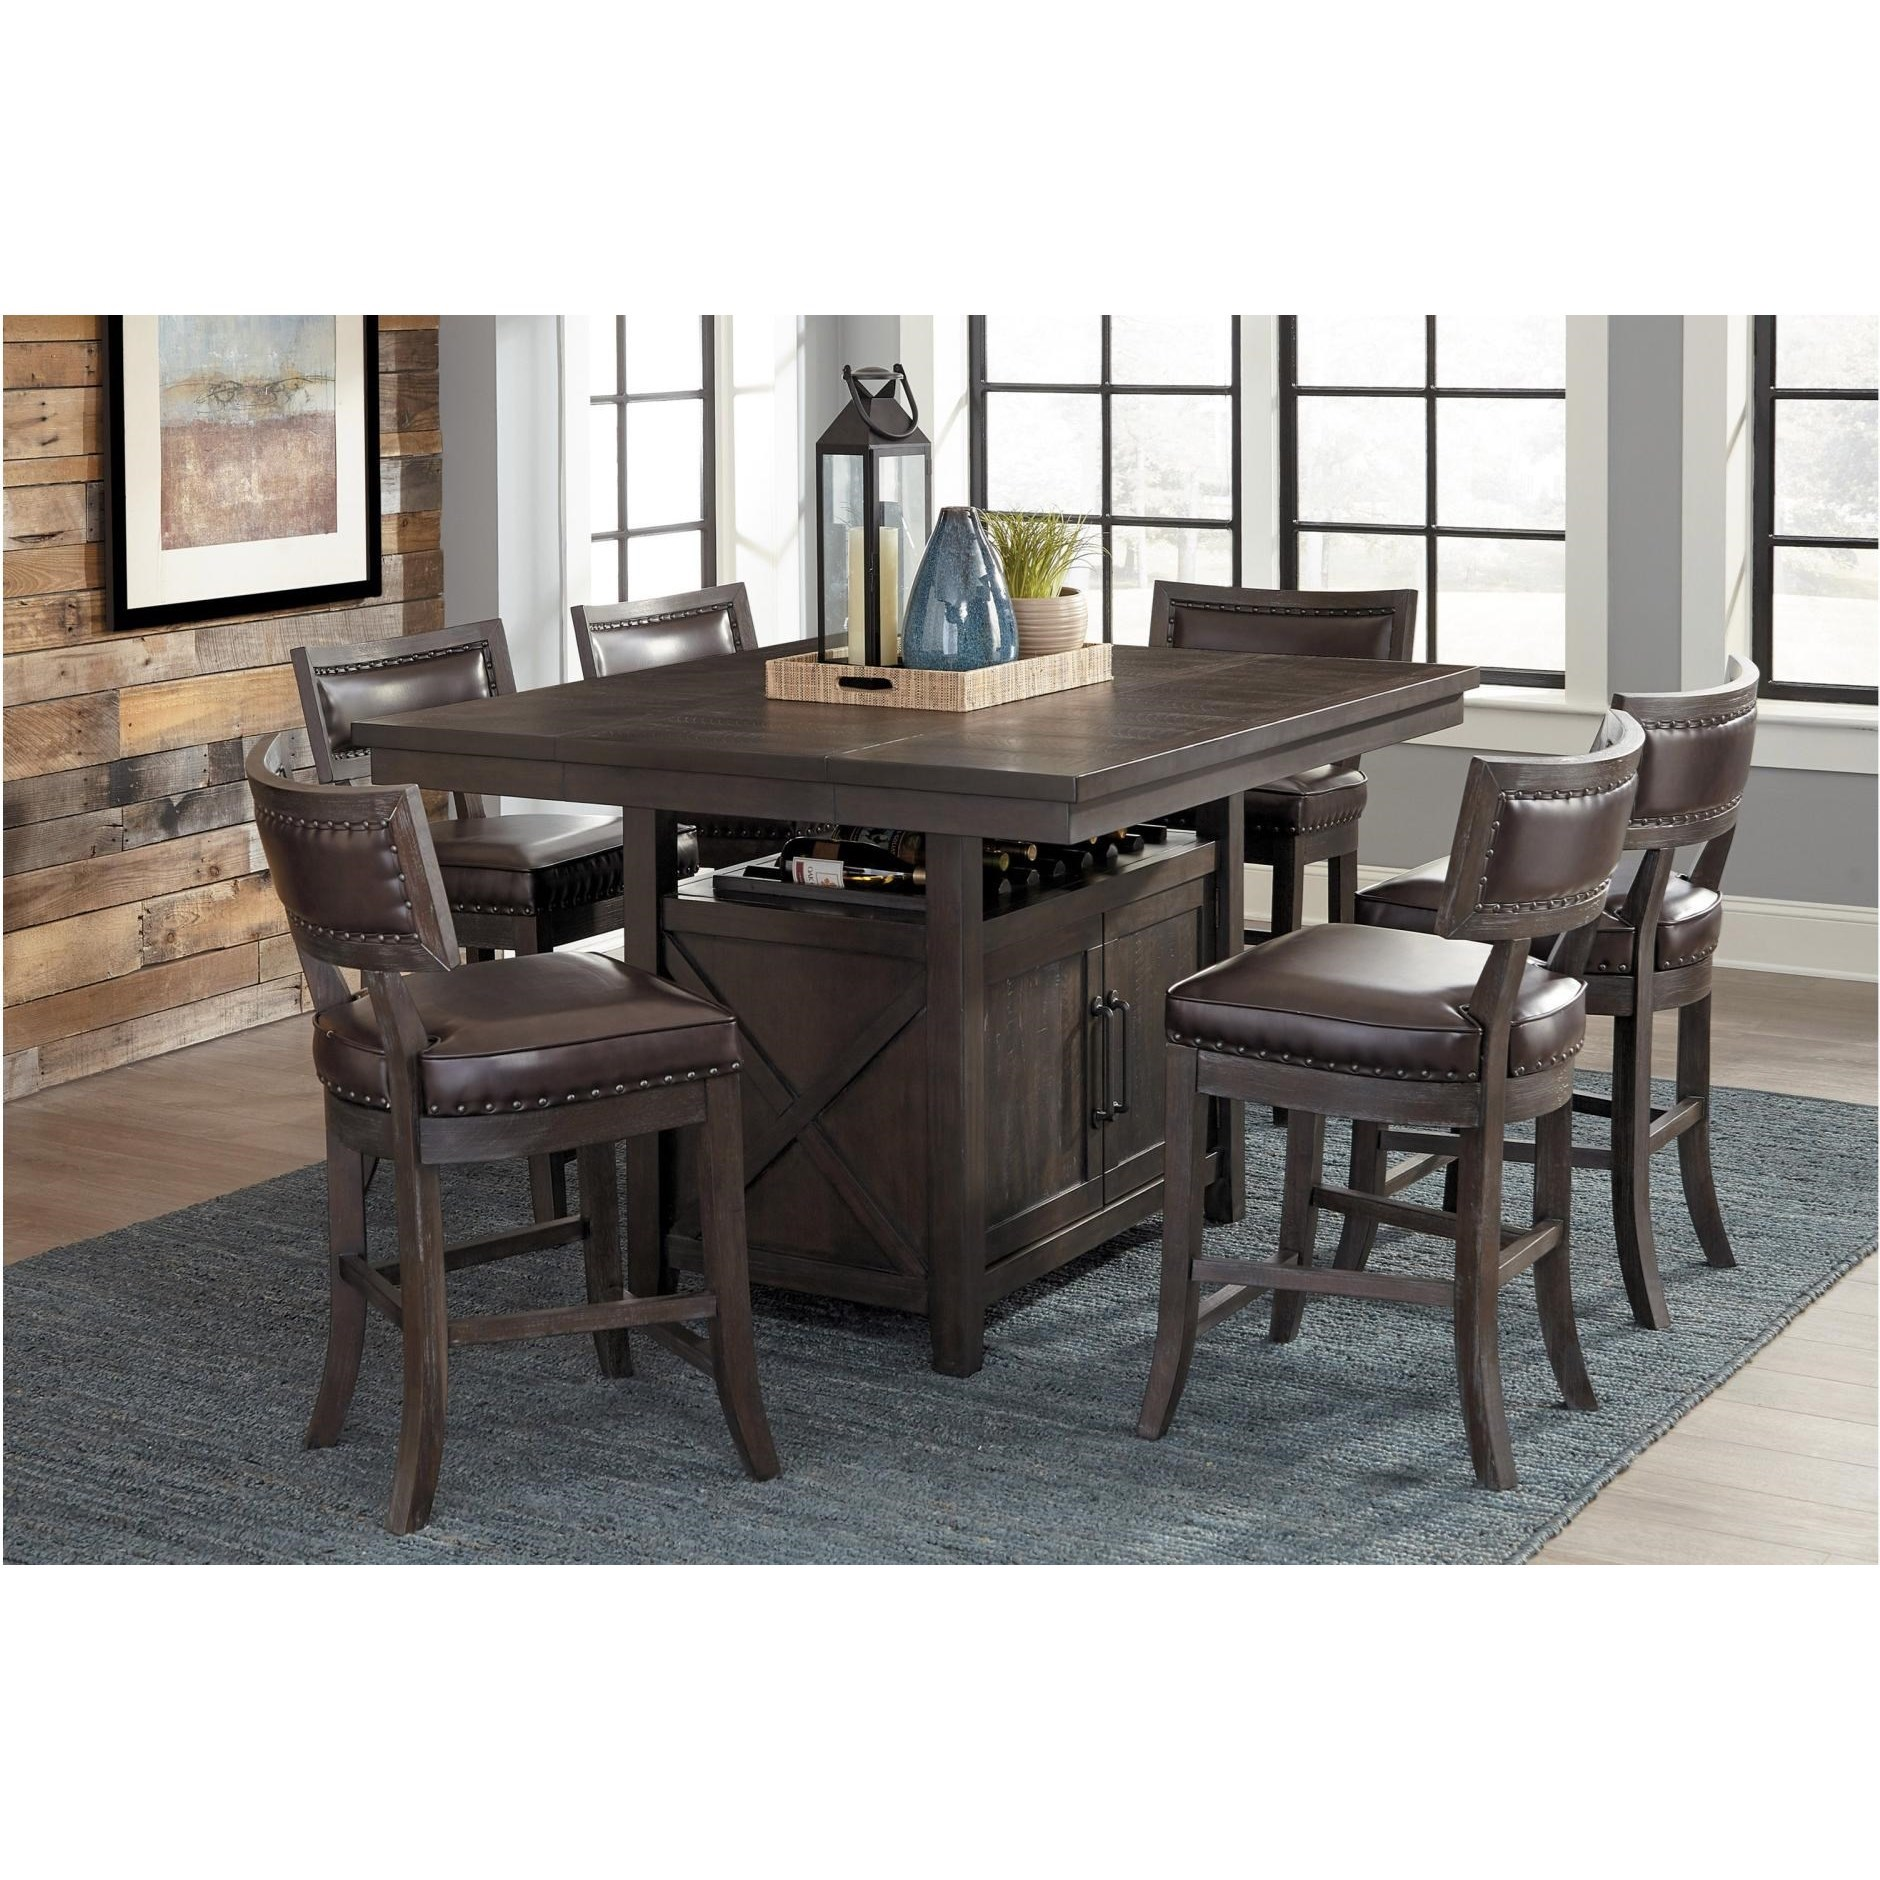 Oxton Counter Height Table Set by Homelegance at Nassau Furniture and Mattress